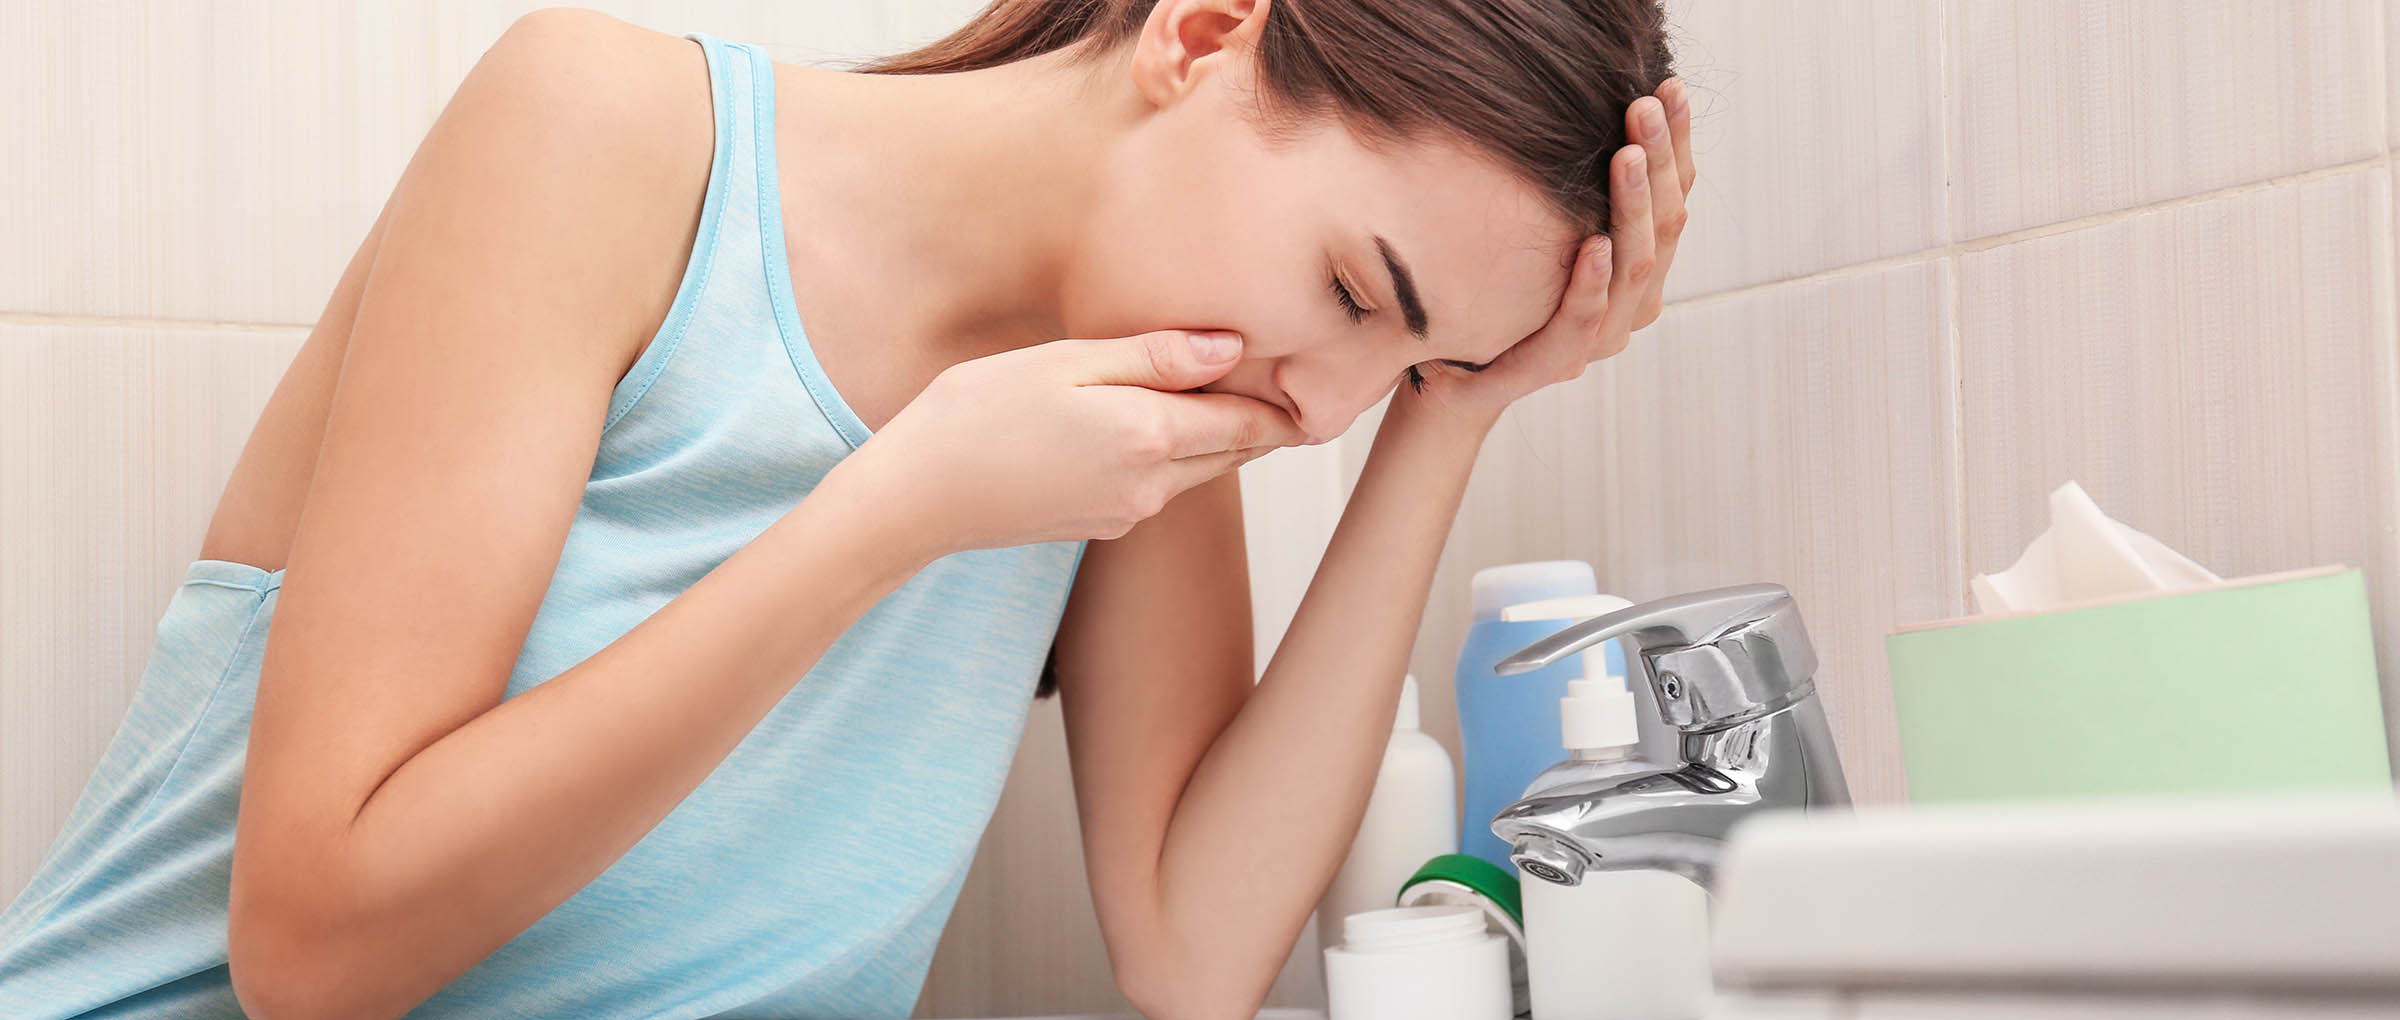 Nausea after eating and food aversions during early pregnancy